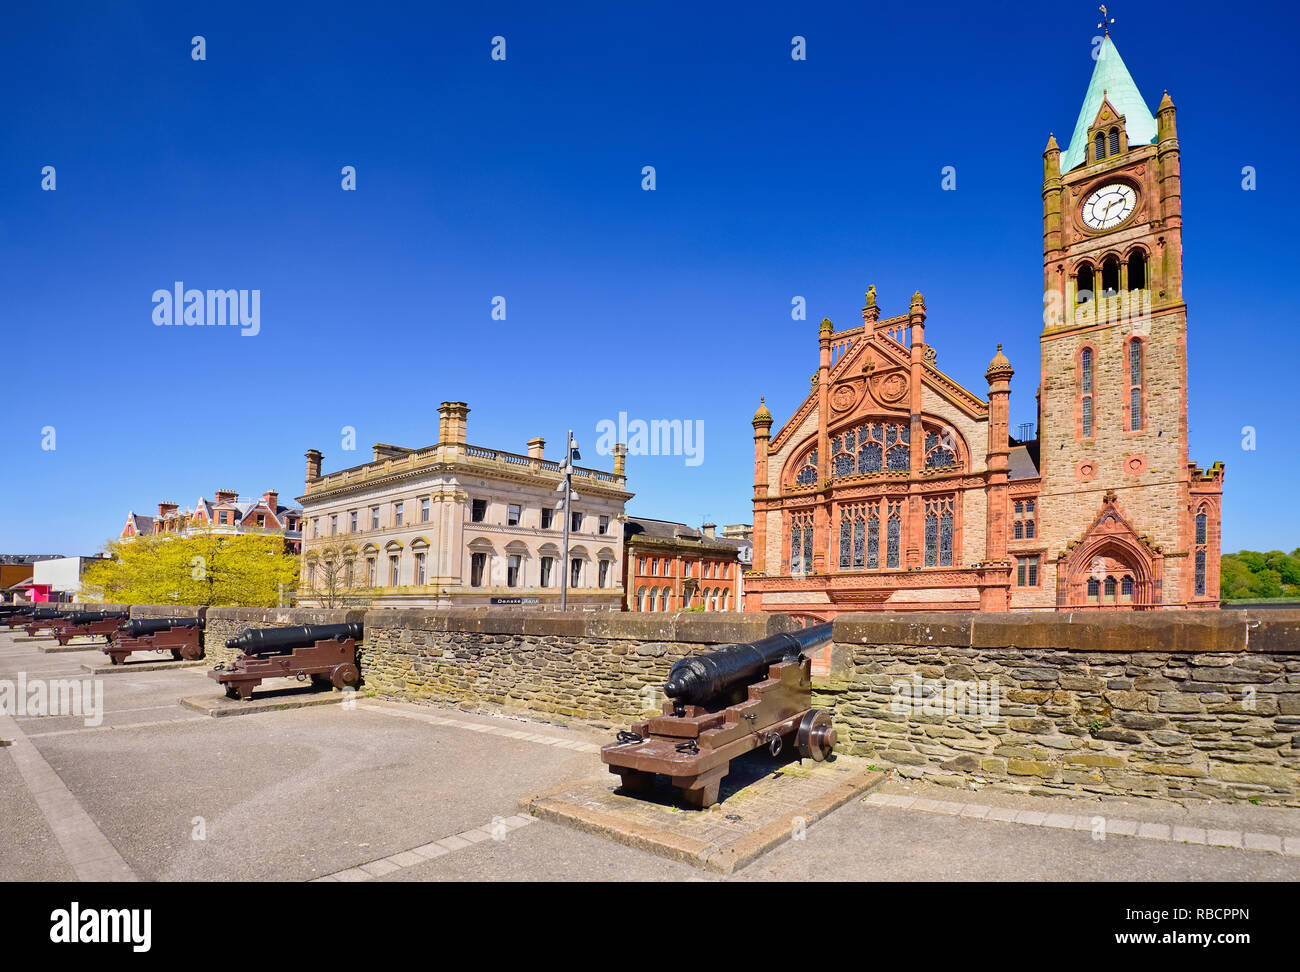 Northern Ireland, County Derry, The Guild Hall, view from the city's 17th century walls with a row of cannons in the foreground. - Stock Image